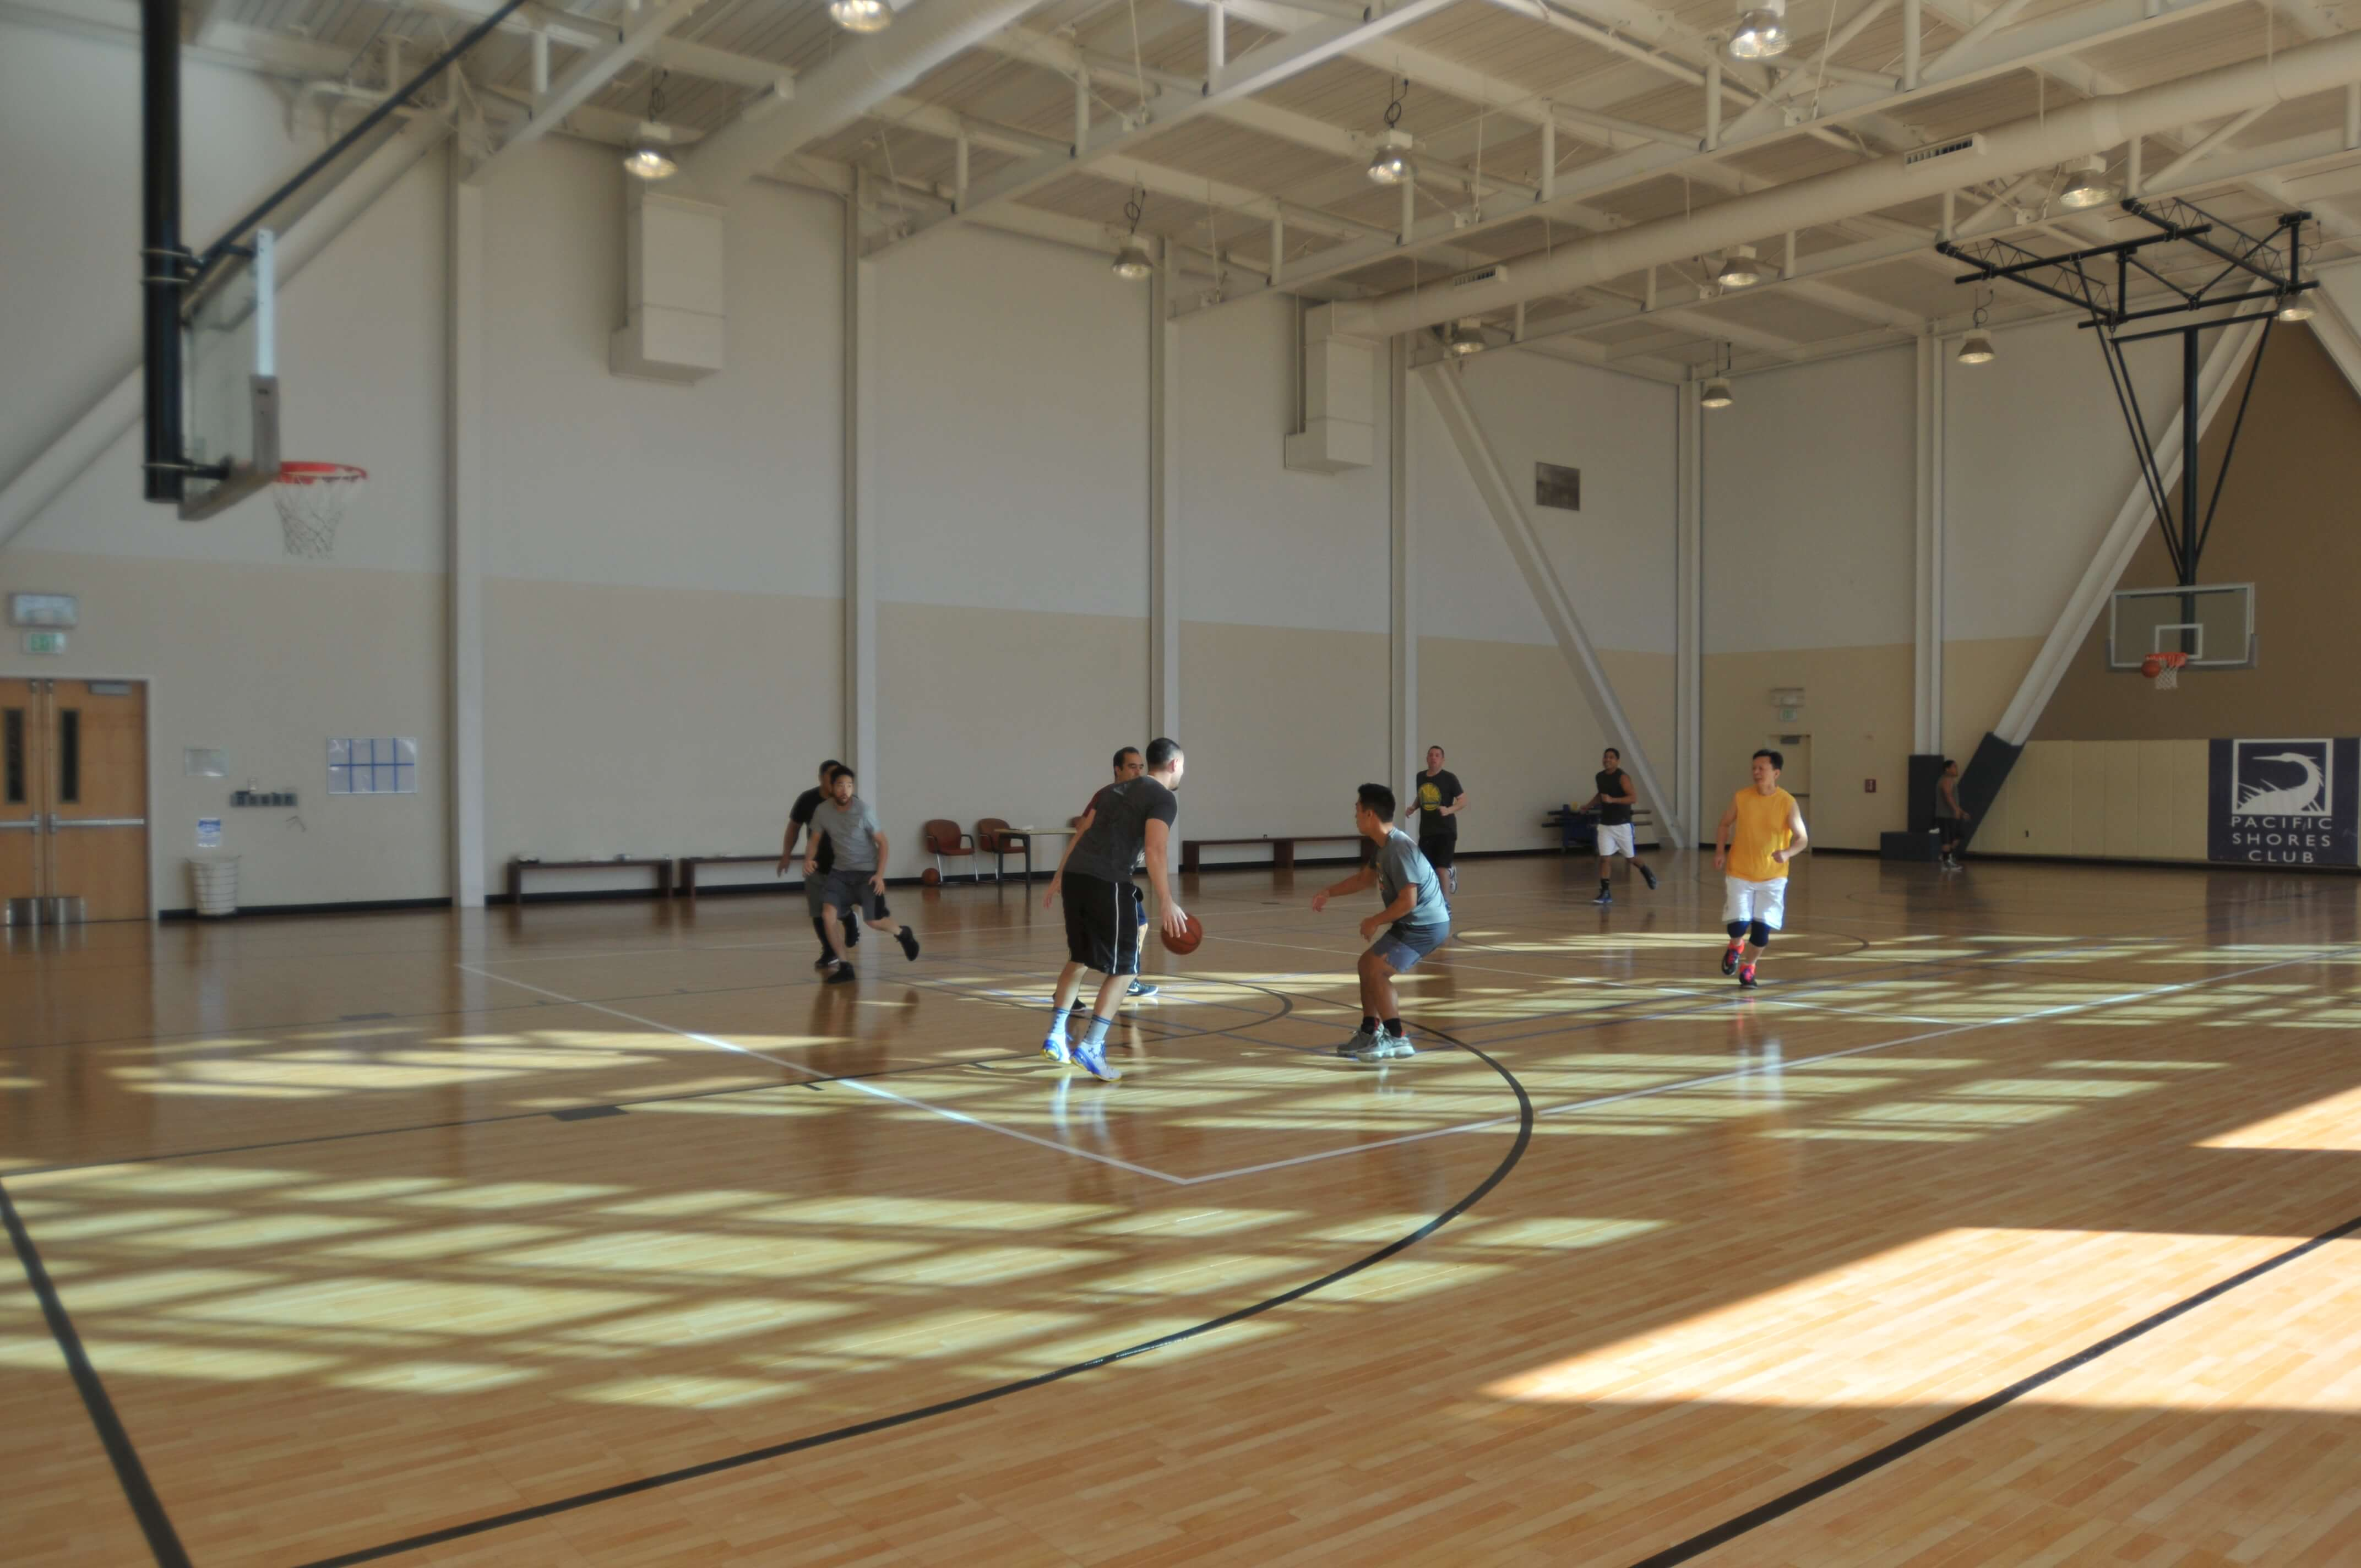 Indoor Sport Court Basketball Court at Google in Redwood City, CA | Response HG Maple Select Surface for Recreation Center Gym Floor